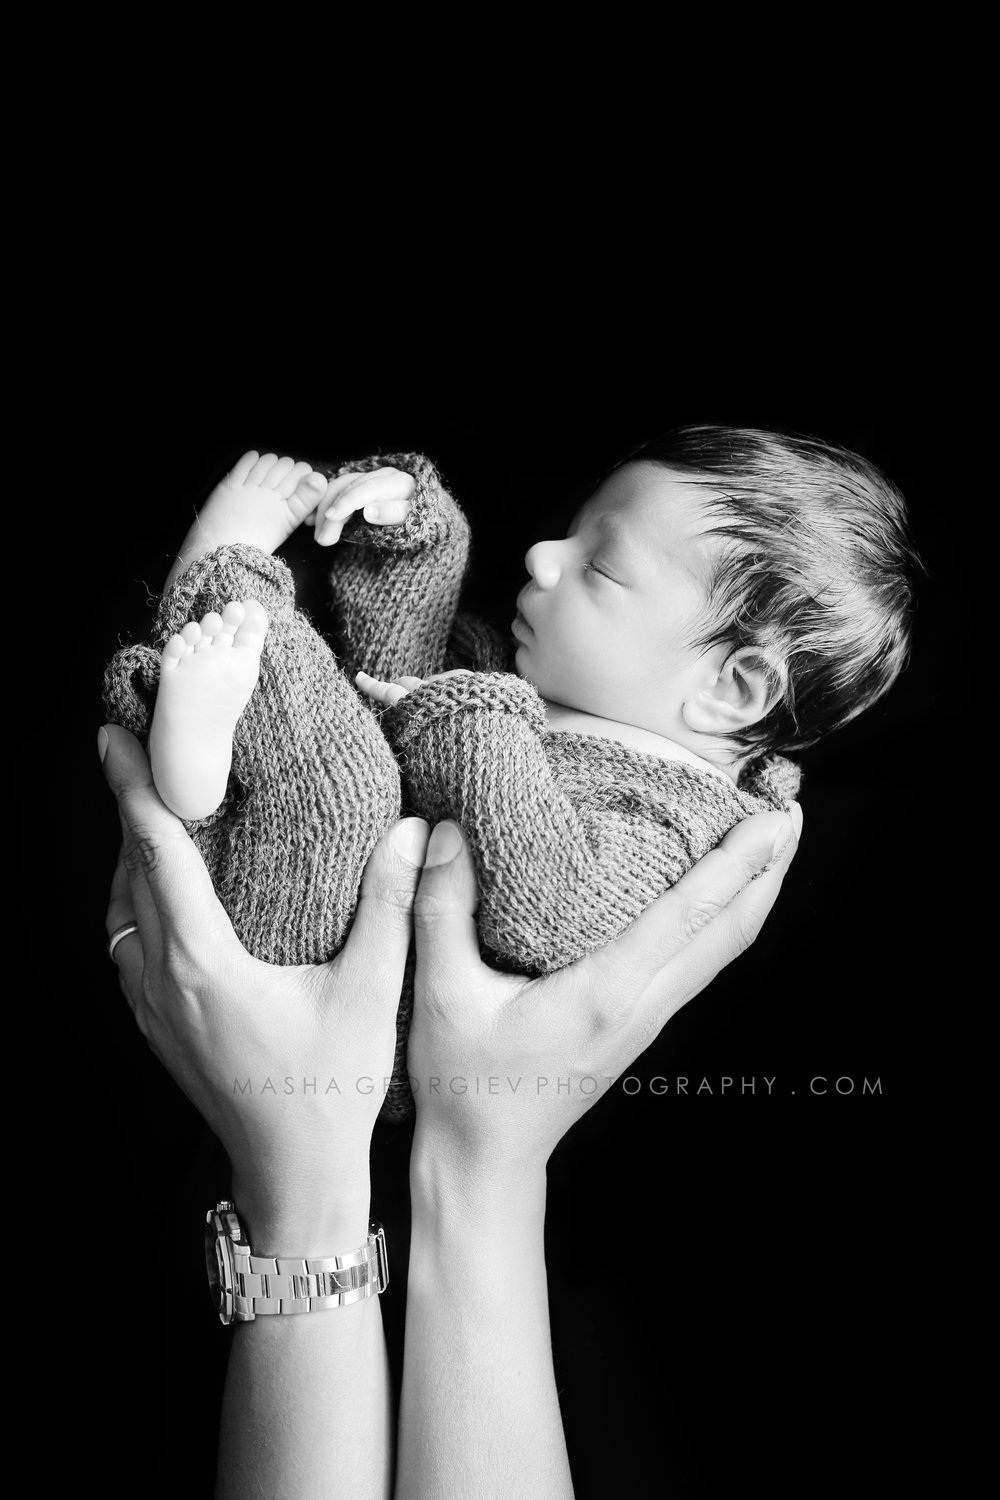 Portland Newborn Photographer Masha Georgiev